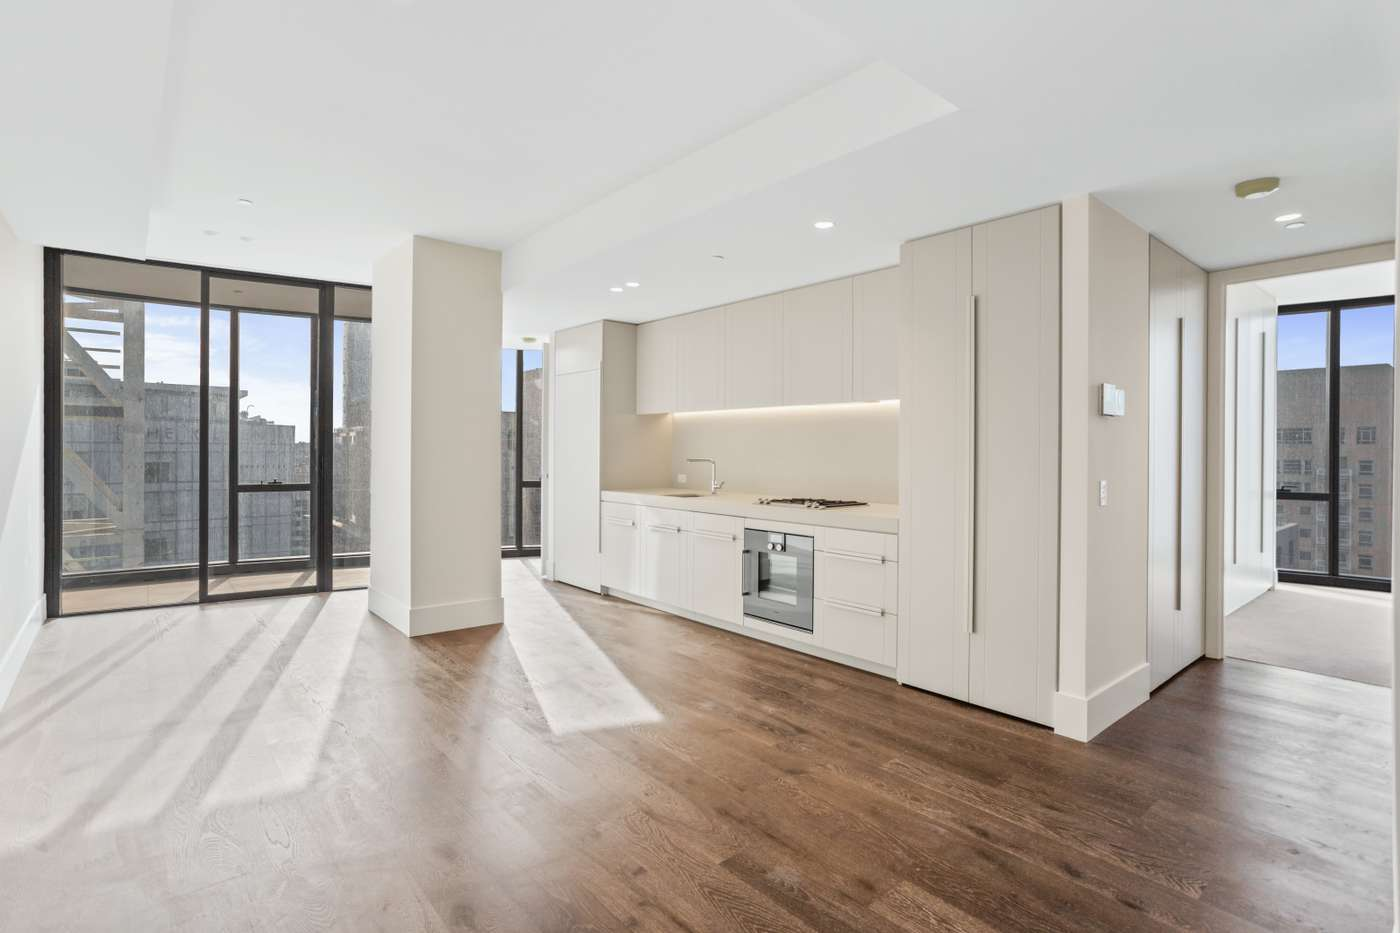 Main view of Homely apartment listing, 2104A/1 Almeida Crescent, South Yarra, VIC 3141